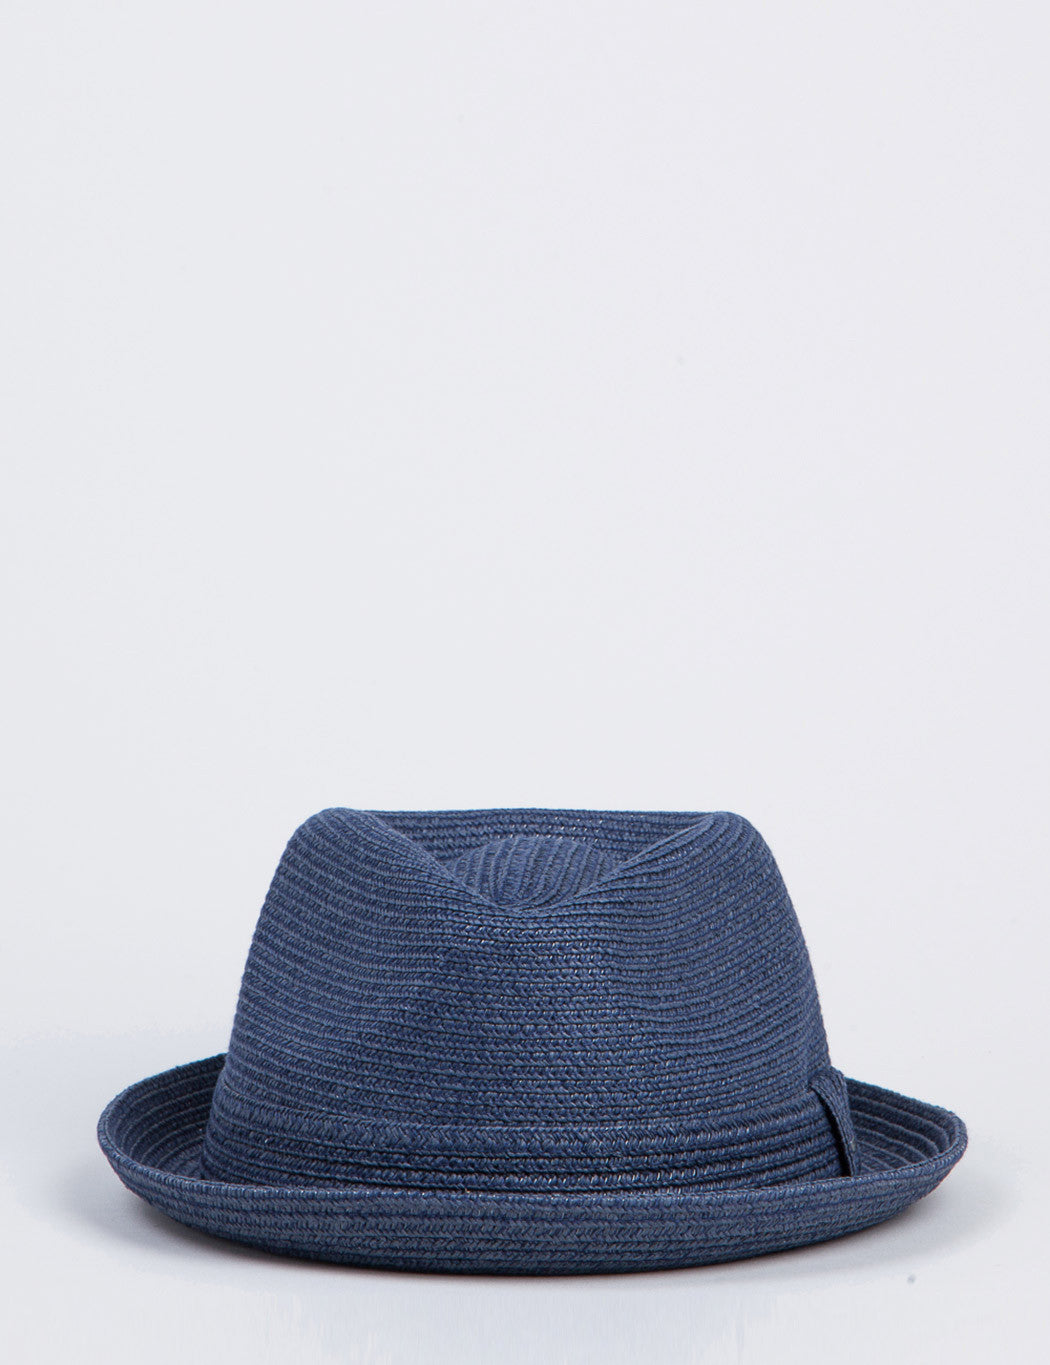 Bailey Billy Trilby Hat - Navy Blue  e3bfa395483